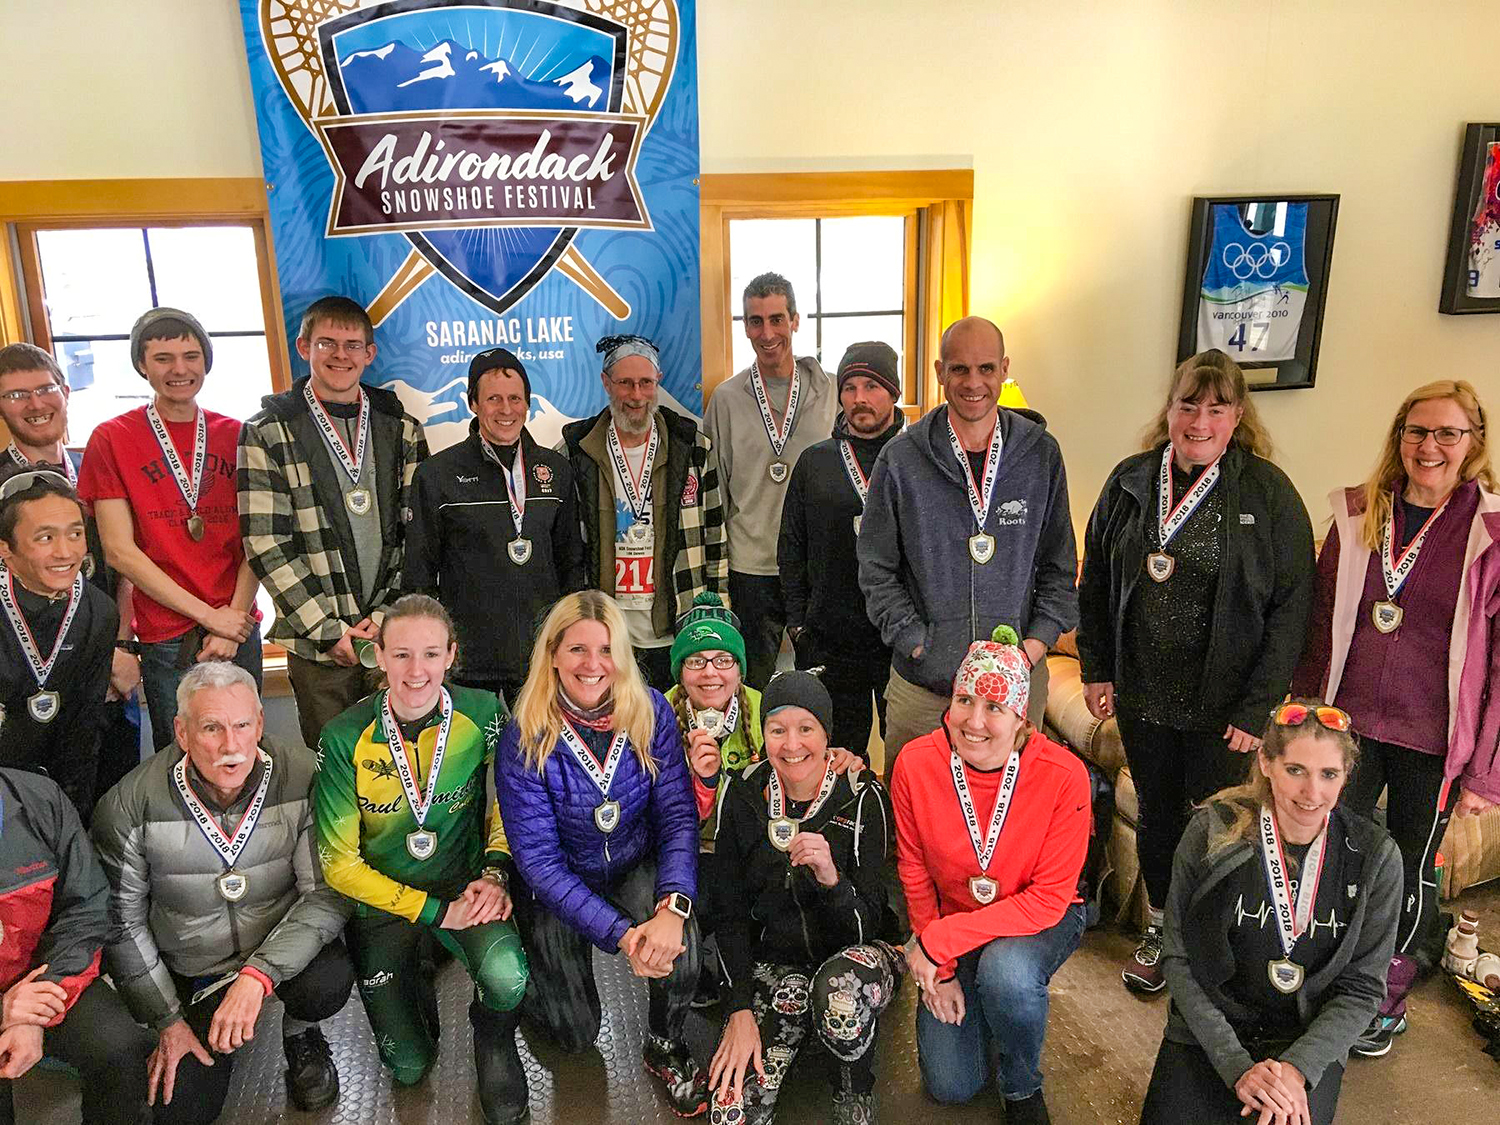 Some award winners from the 2018 Adirondack Snowshoe Fest races at Dewey Mountain in Saranac Lake.